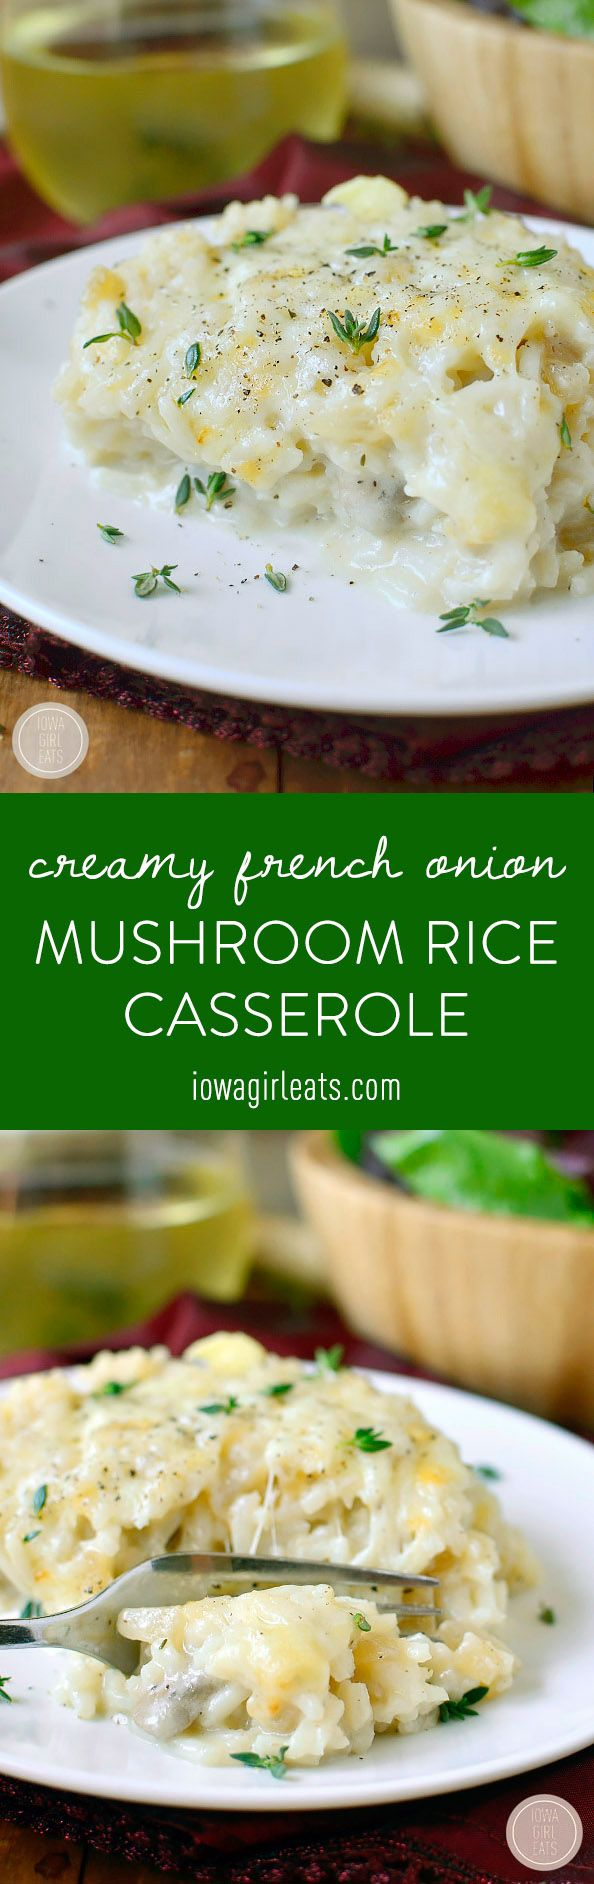 Creamy French Onion and Mushroom Rice Casserole is a warming and delicious meatless casserole that will fill your house with the savory scent of French Onion Soup! | iowagirleats.com